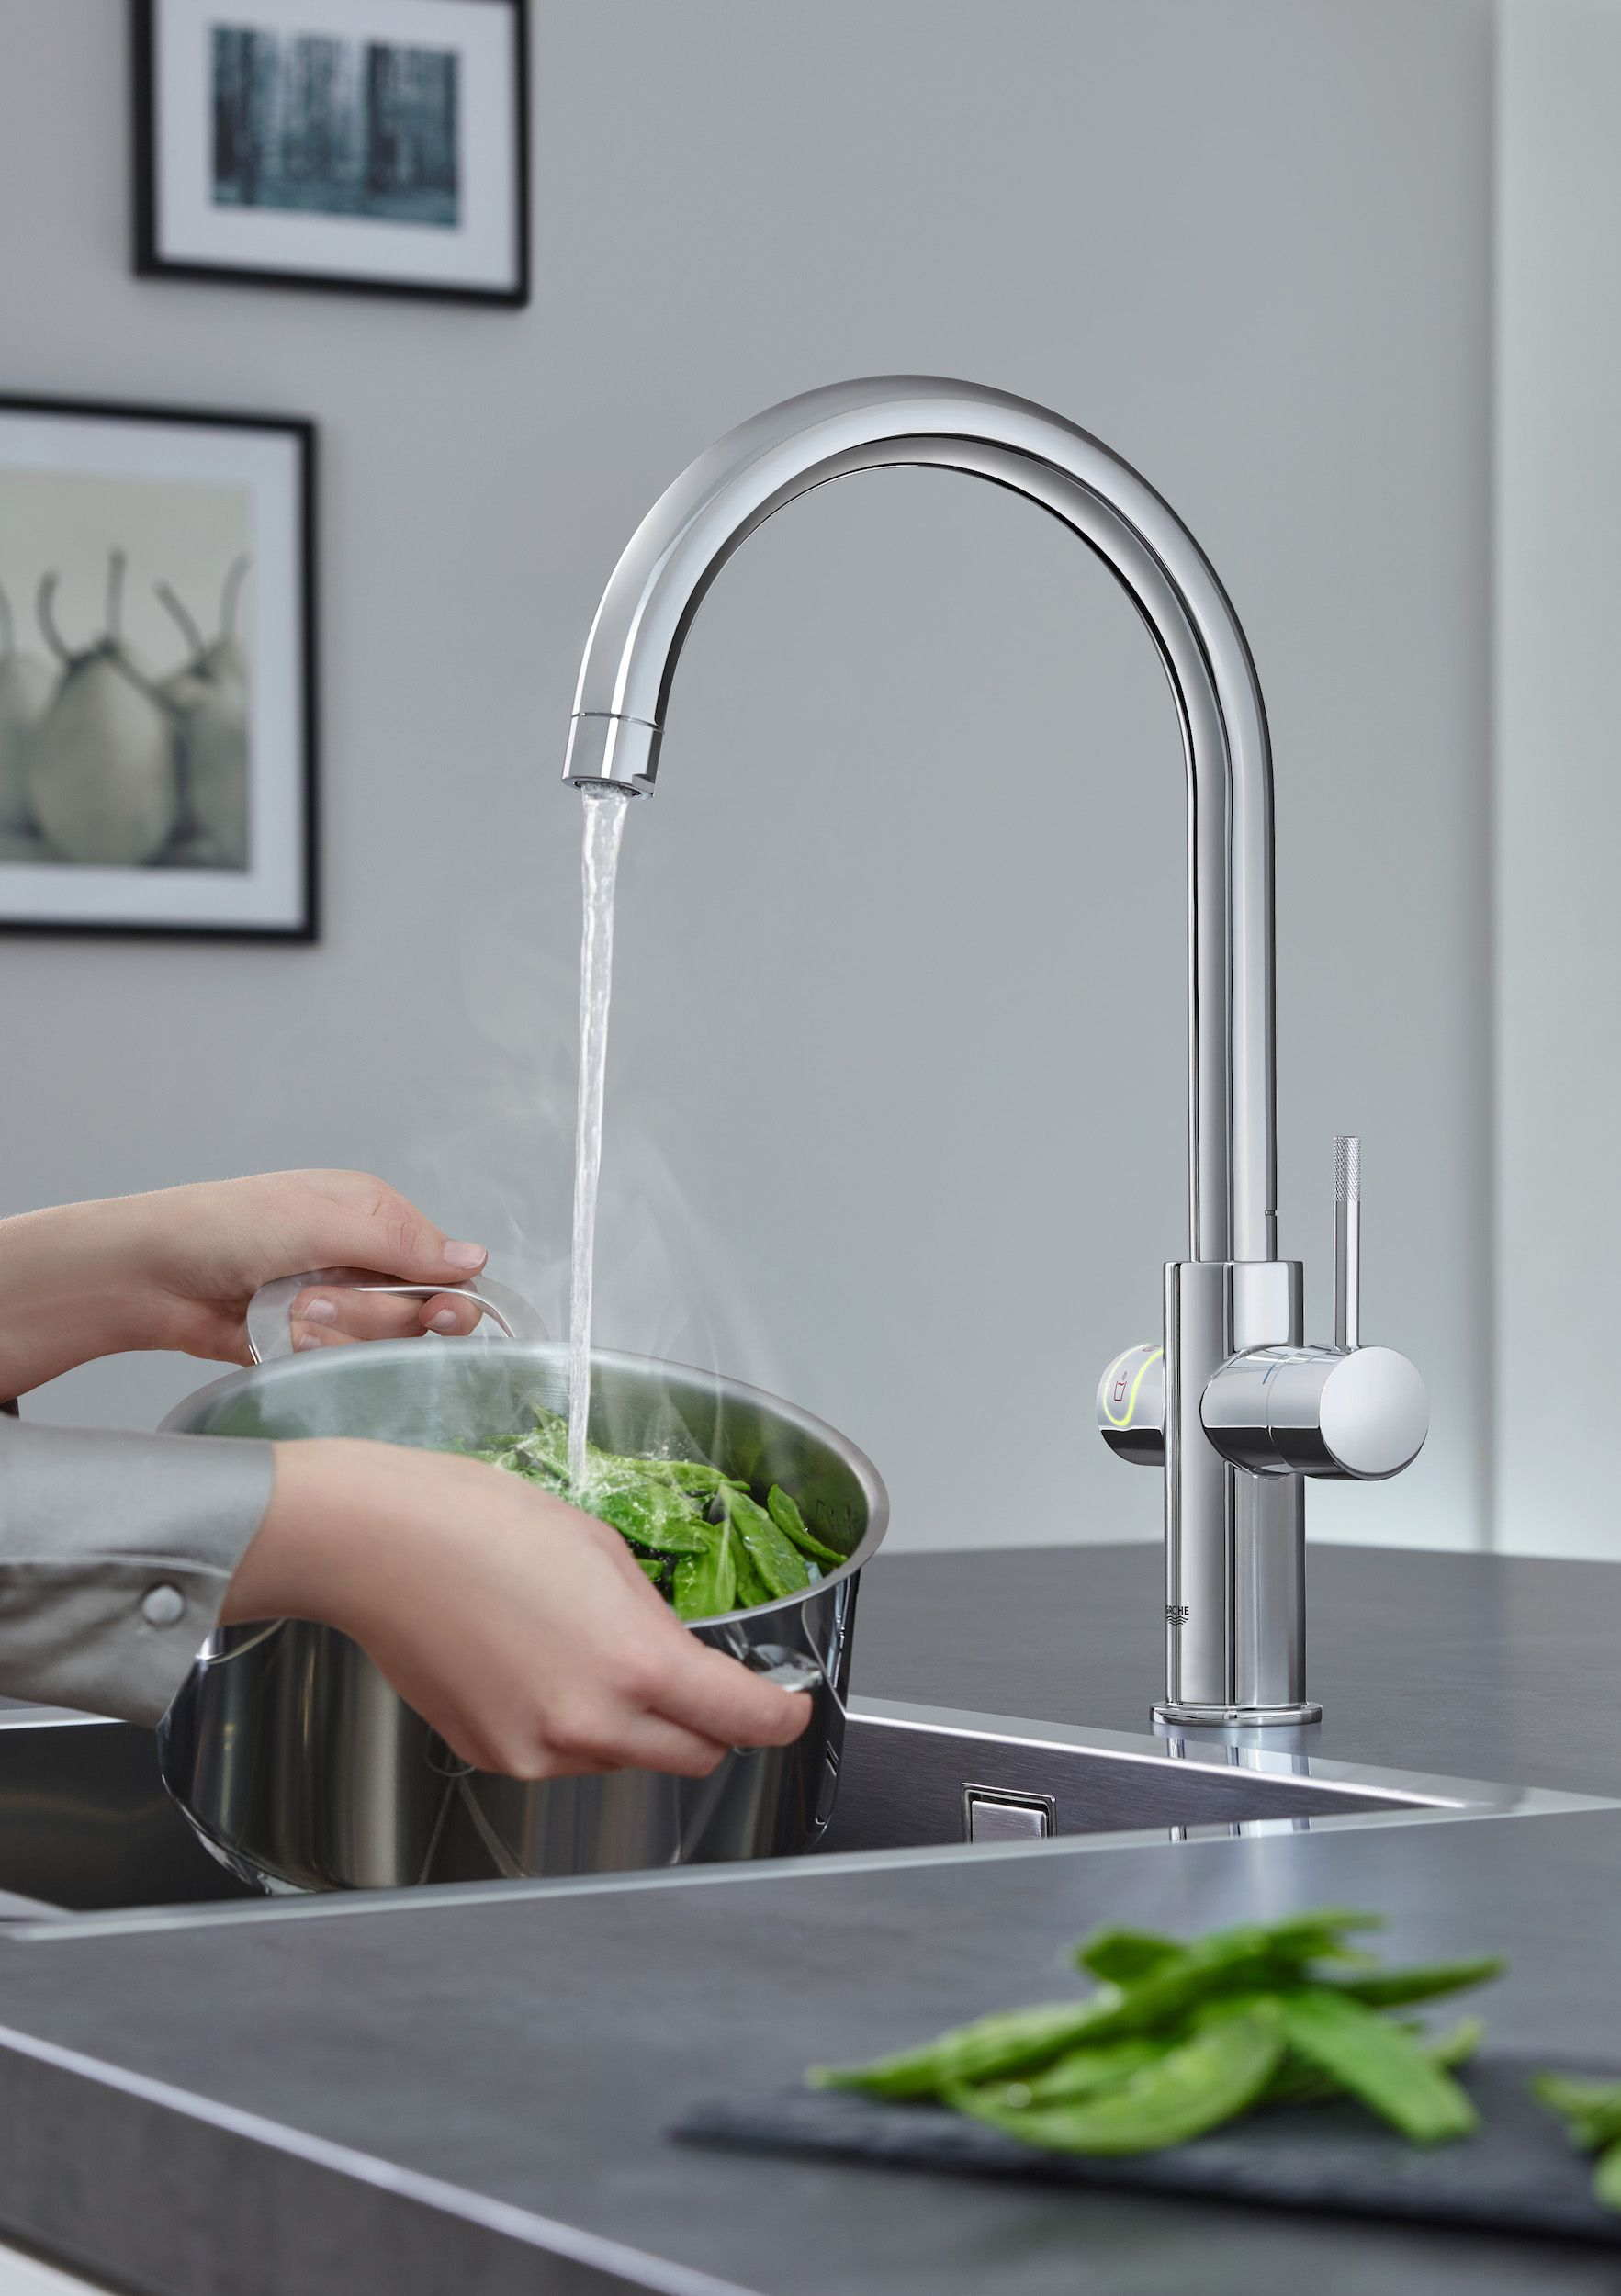 Top 10 Best Kitchen Faucets in 2017